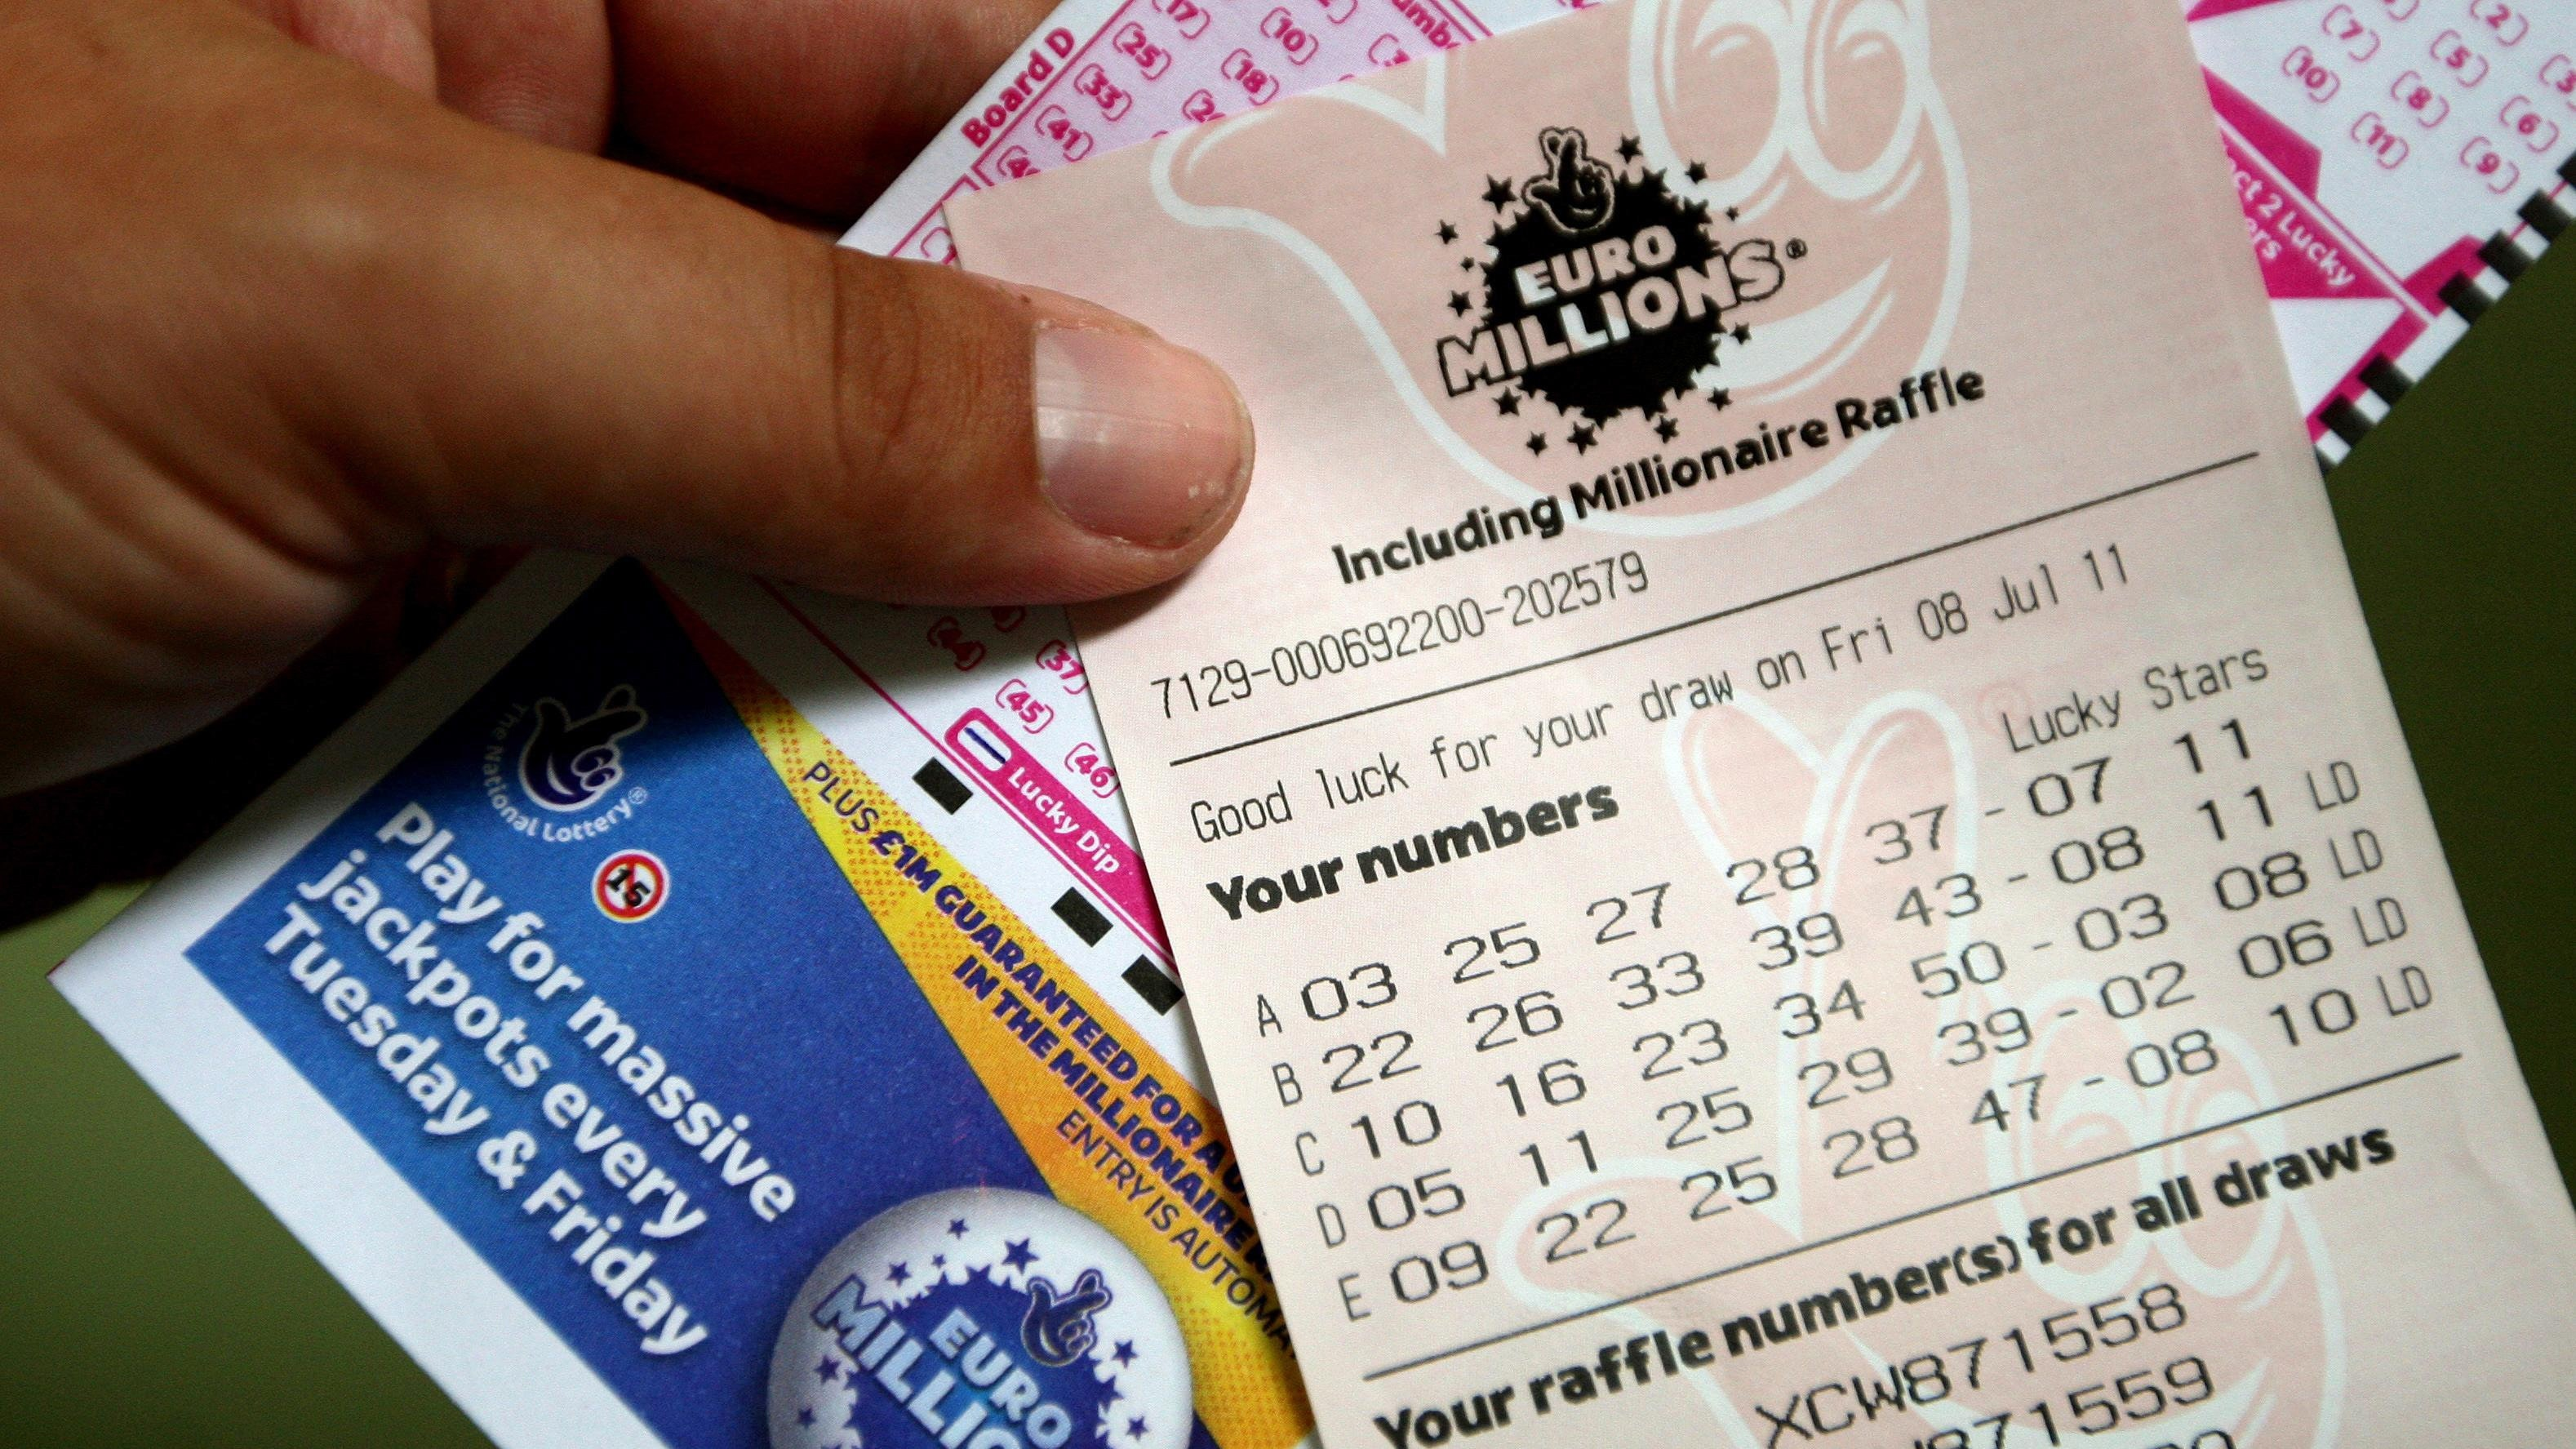 The winning €175 million EuroMillions ticket was sold in Dublin